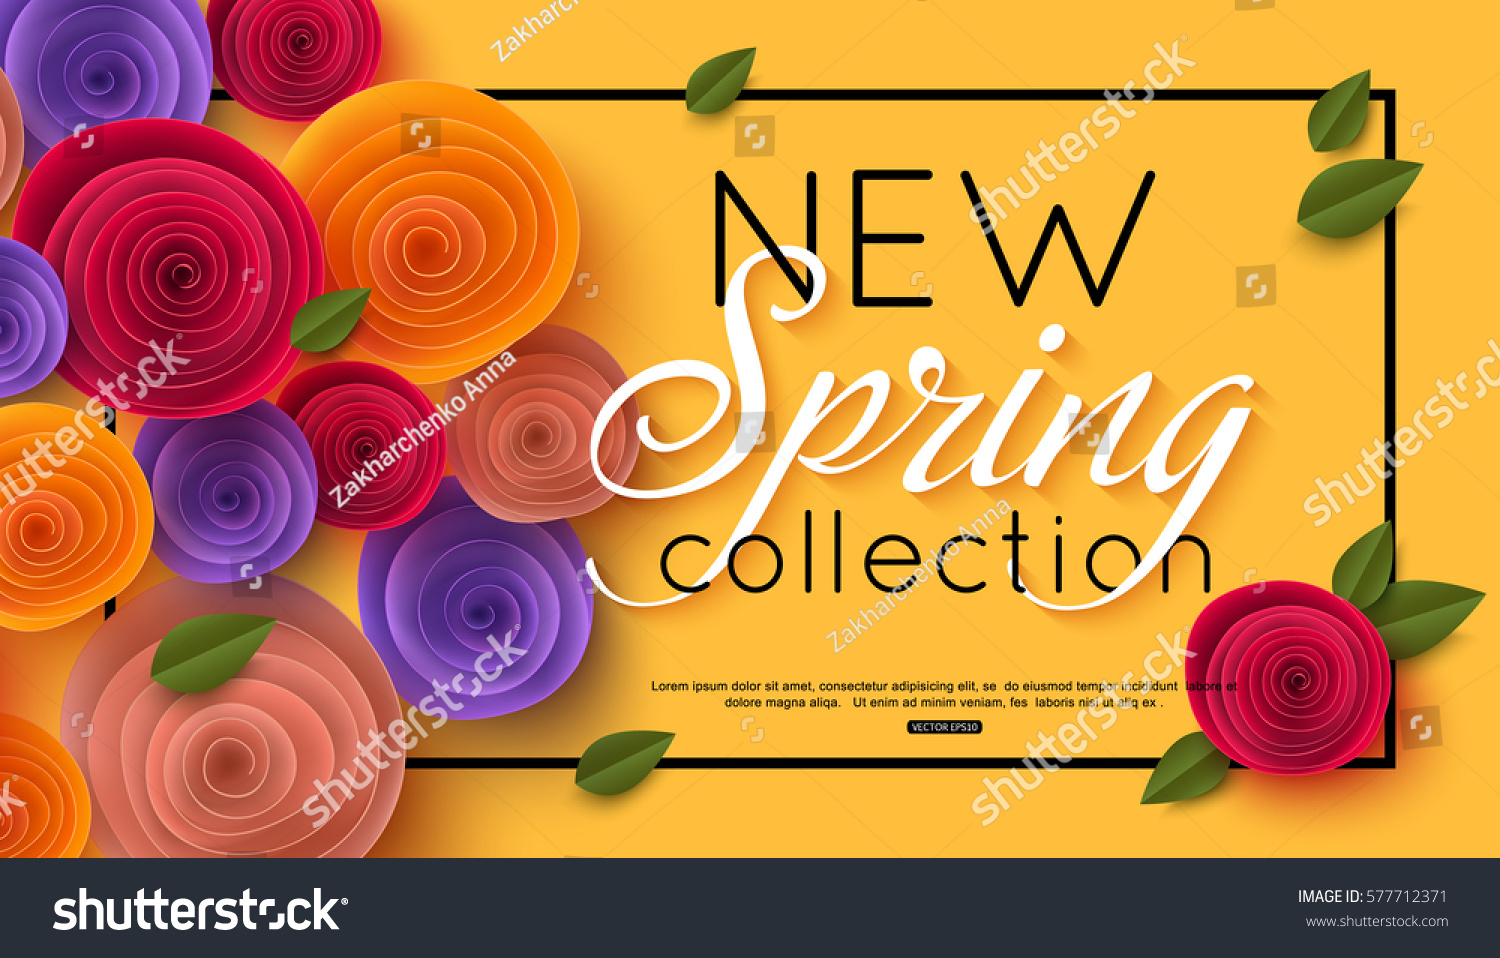 Spring banner paper flowers online shopping stock vector 577712371 spring banner with paper flowers for online shopping advertising actions magazines and websites dhlflorist Image collections